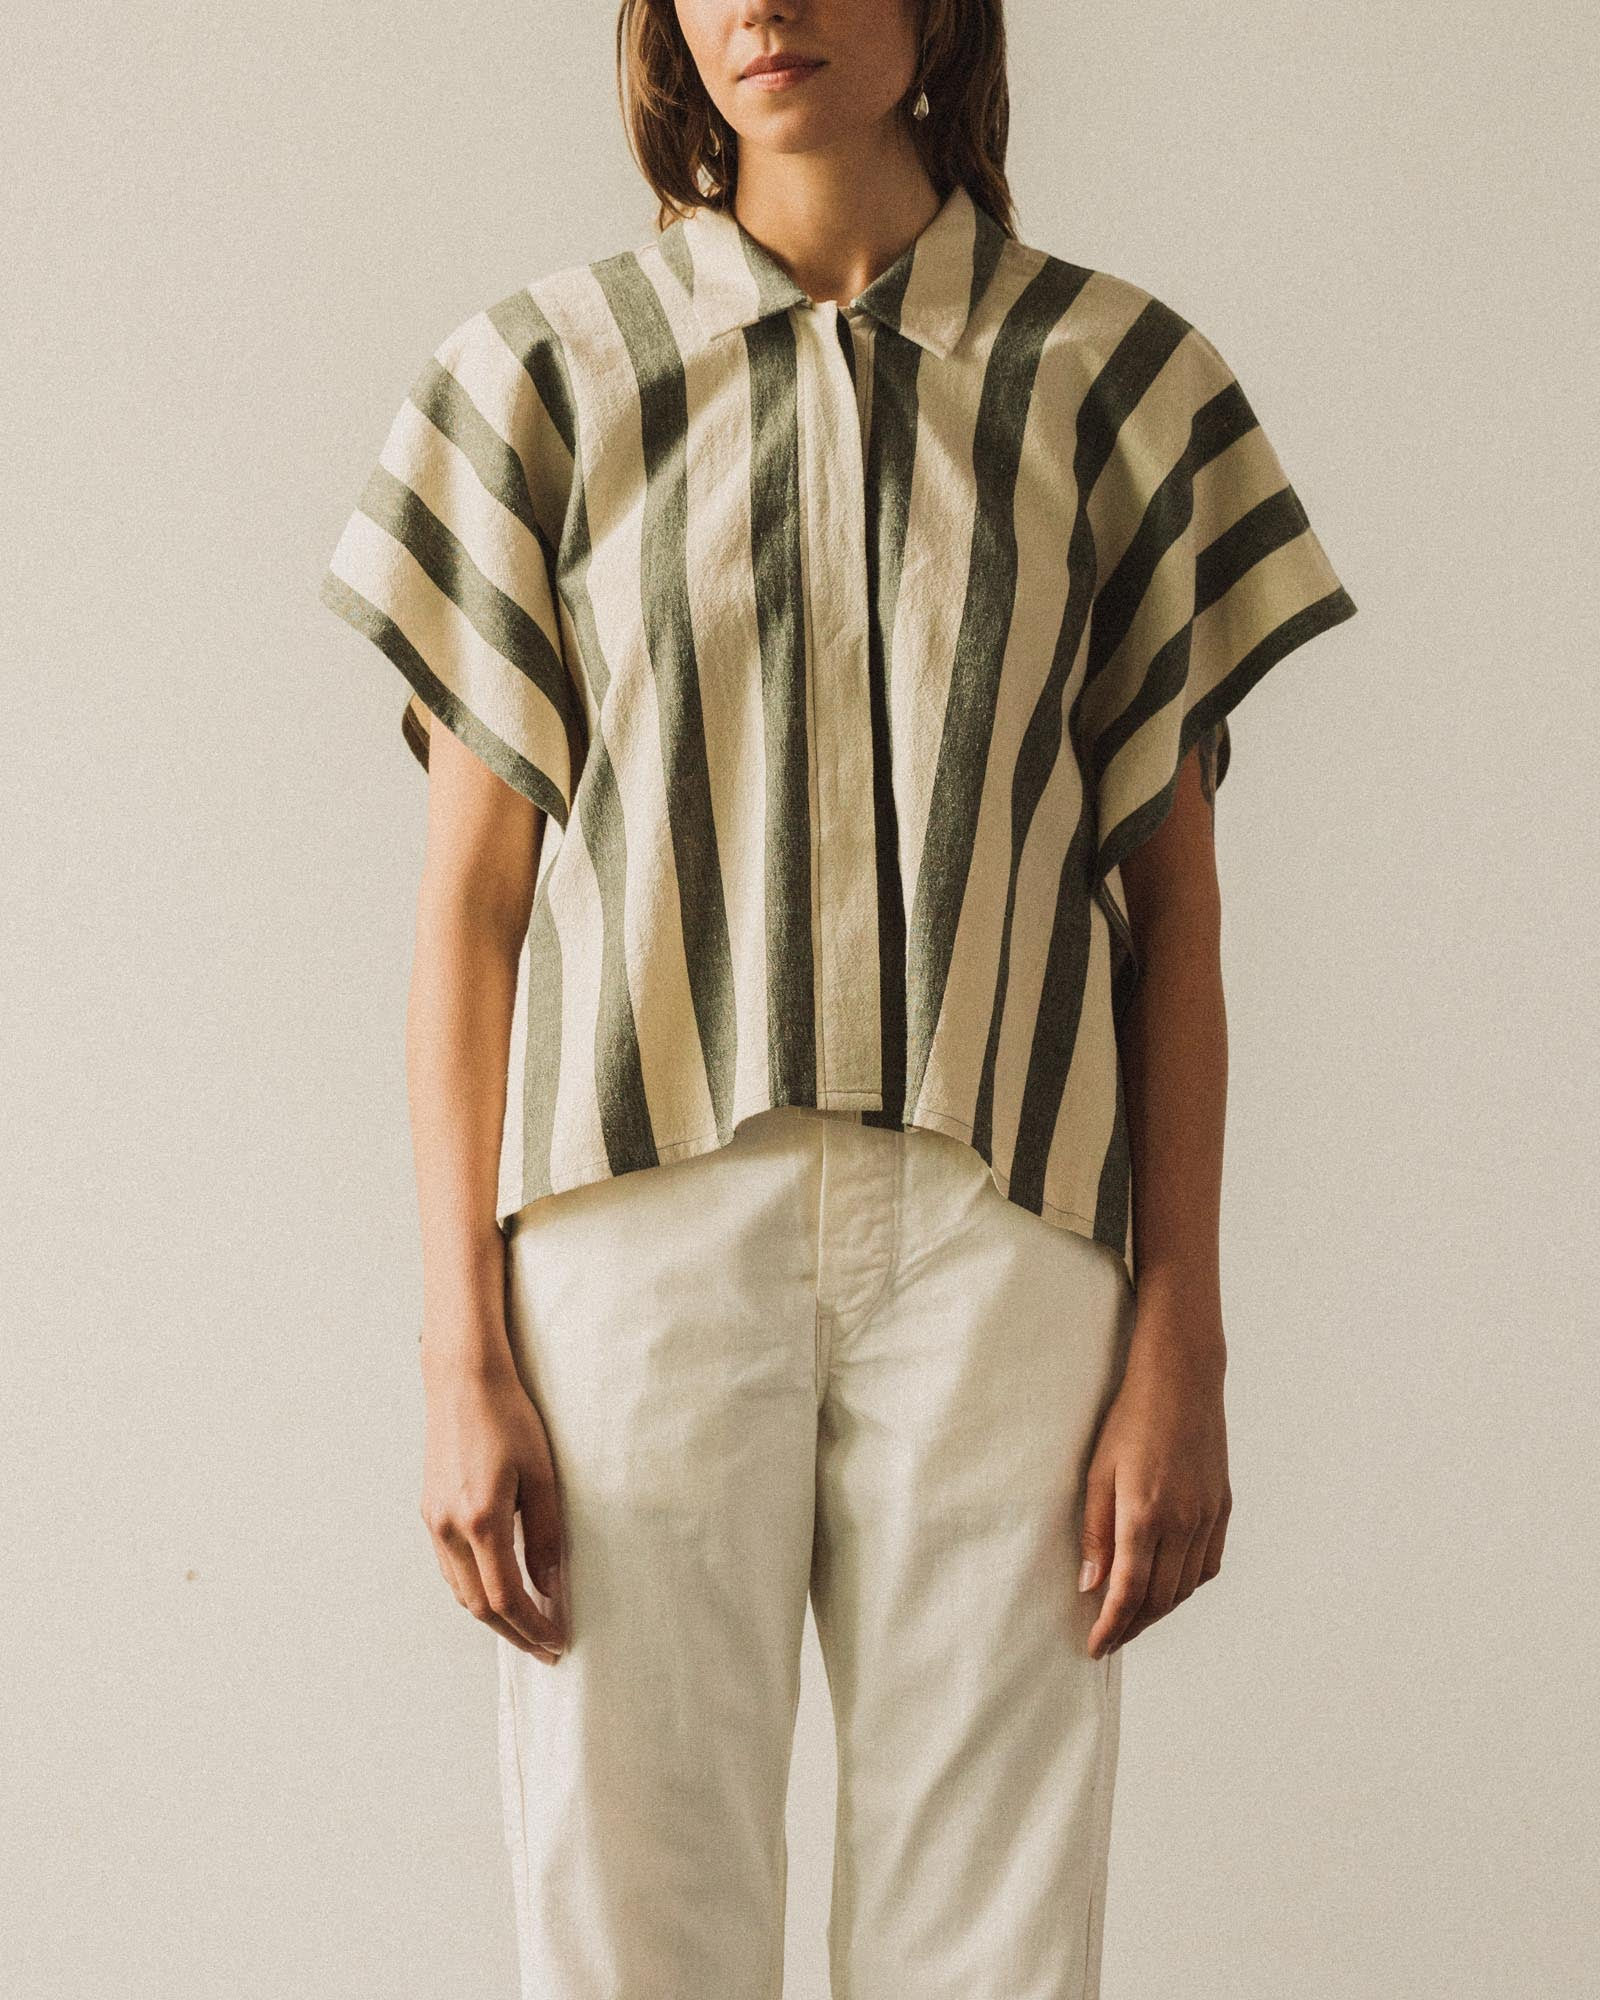 7115 Striped Swing Shirt, Light Stripe